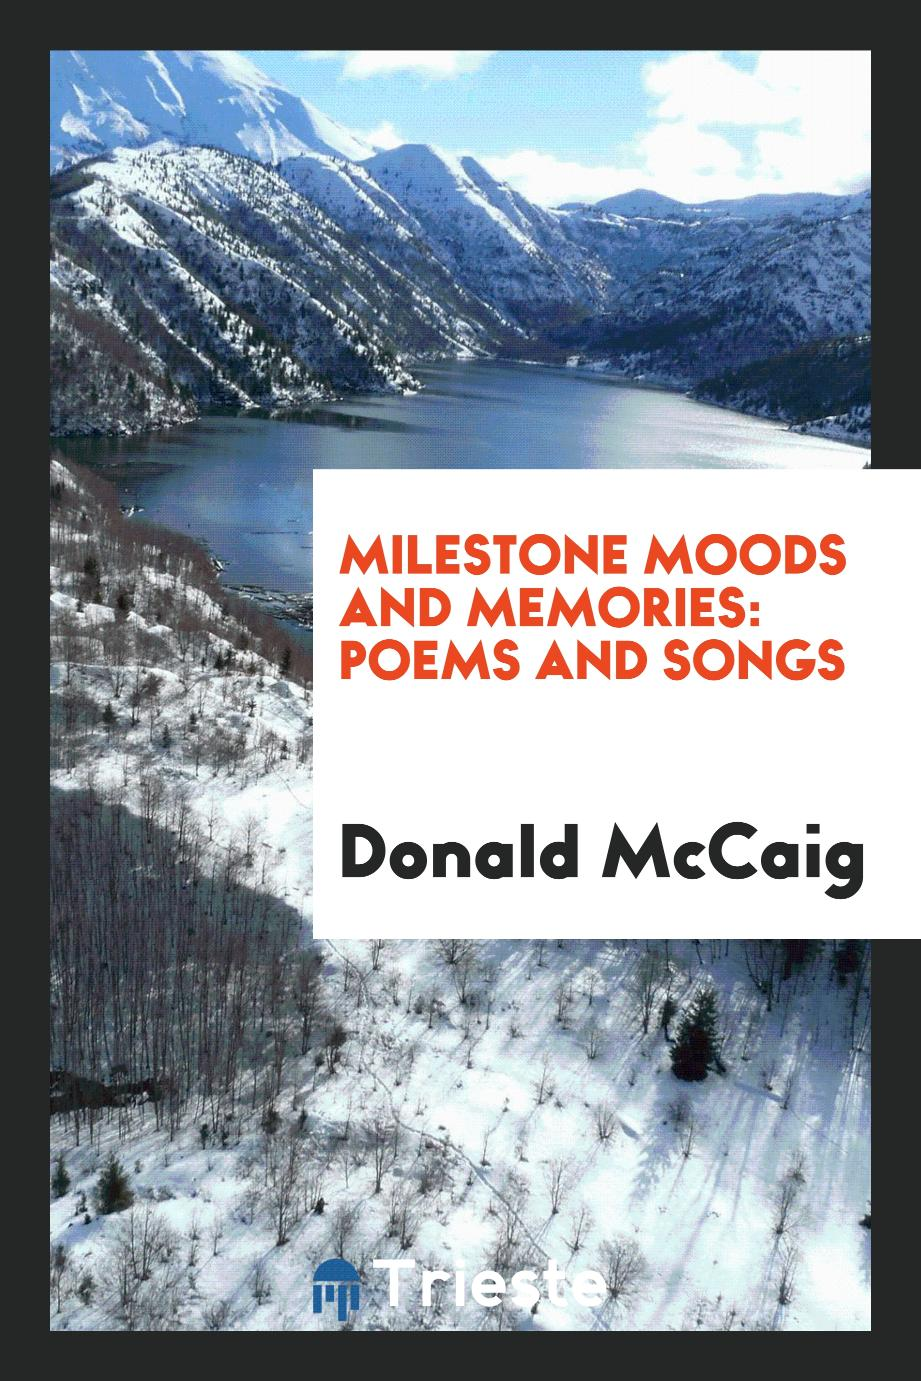 Milestone Moods and Memories: Poems and Songs